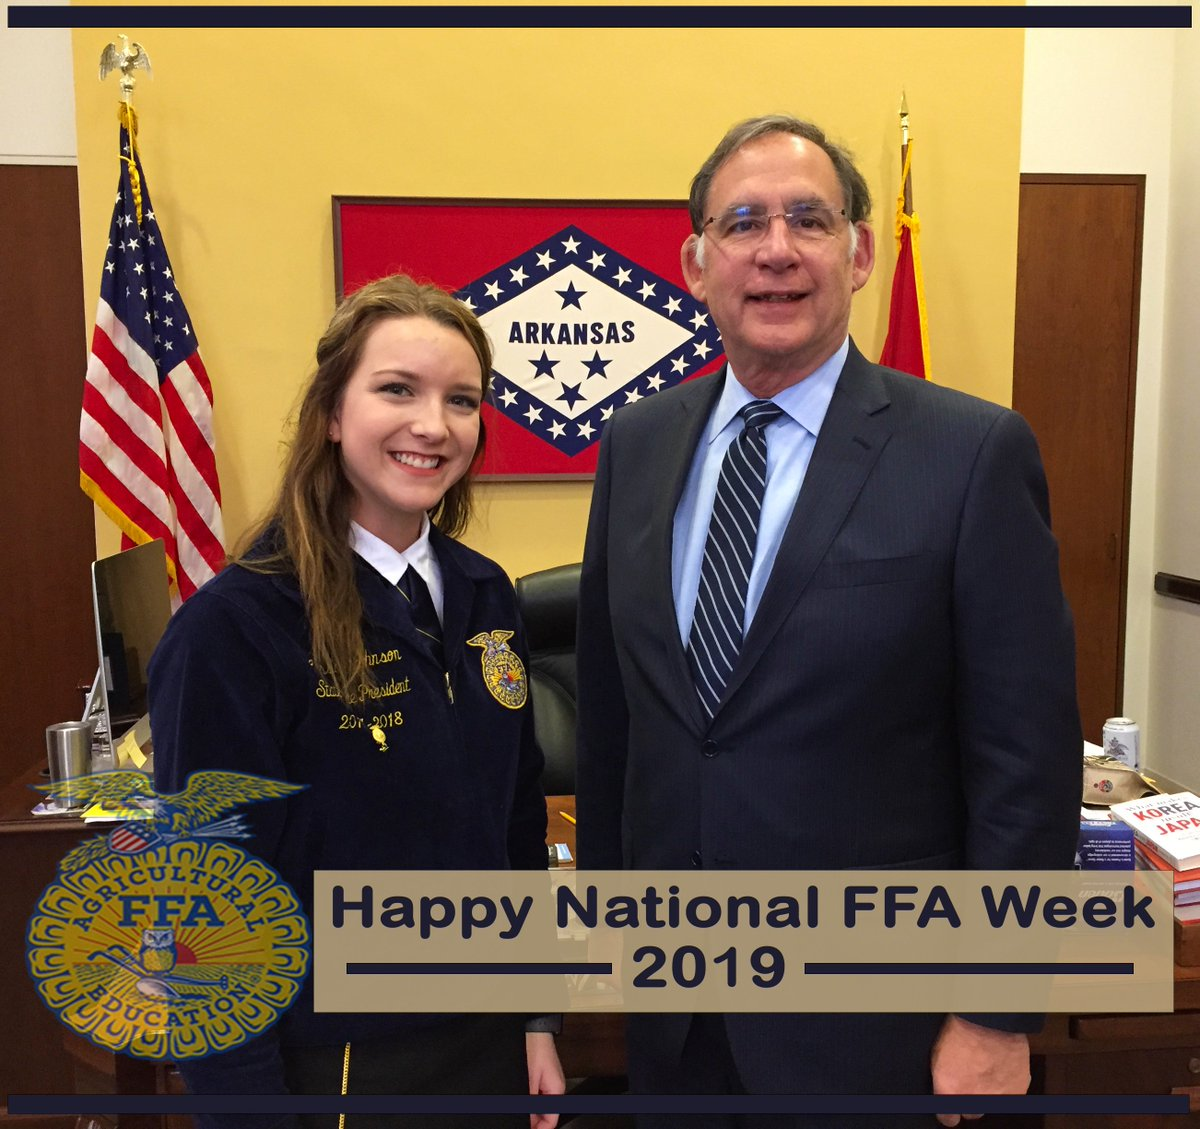 Grateful for what @NationalFFA & @ArkansasFFA do to help advance ag education and shape young lives. Celebrating this #FFAWeek along with them and looking forward to the next time we have an opportunity to meet again. Those blue jackets are always a welcome sight. #FFAWeek2019